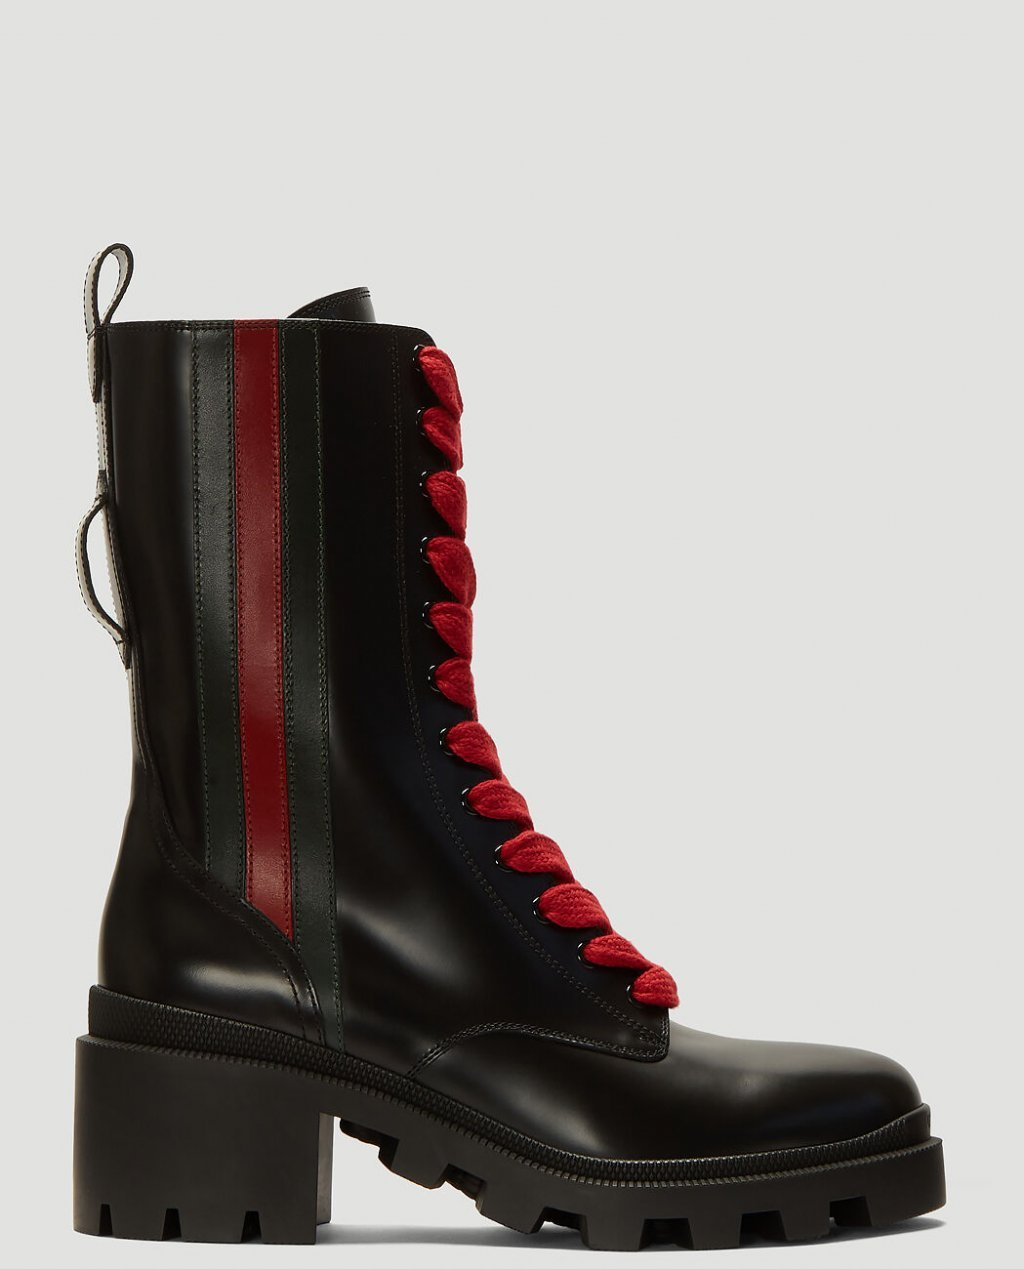 Gucci Web-Trim Leather Boots in Black